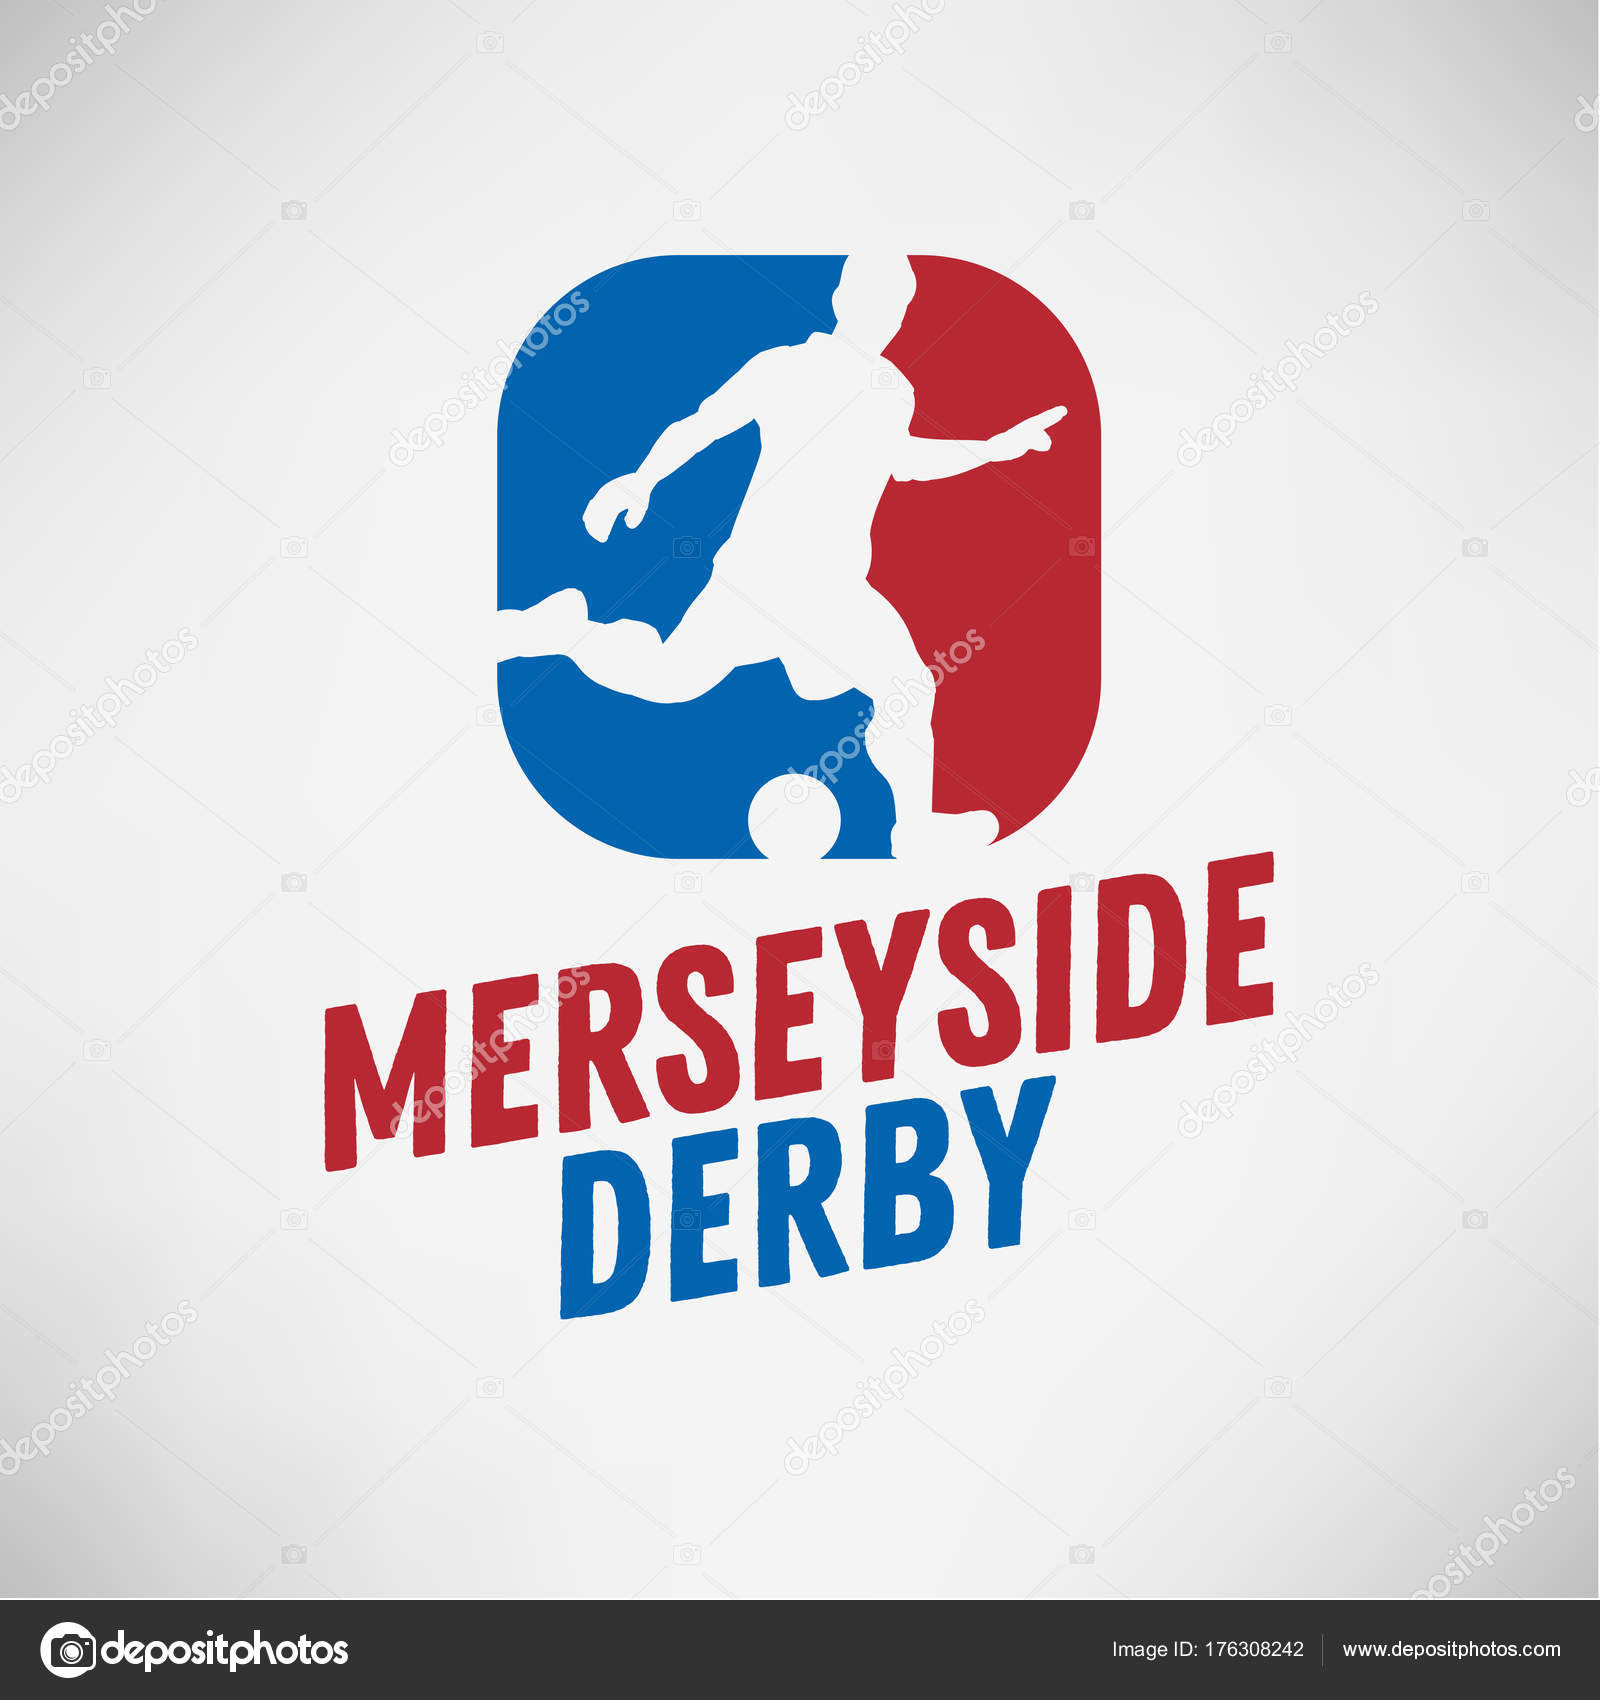 merseyside derby of liverpool and manchester united